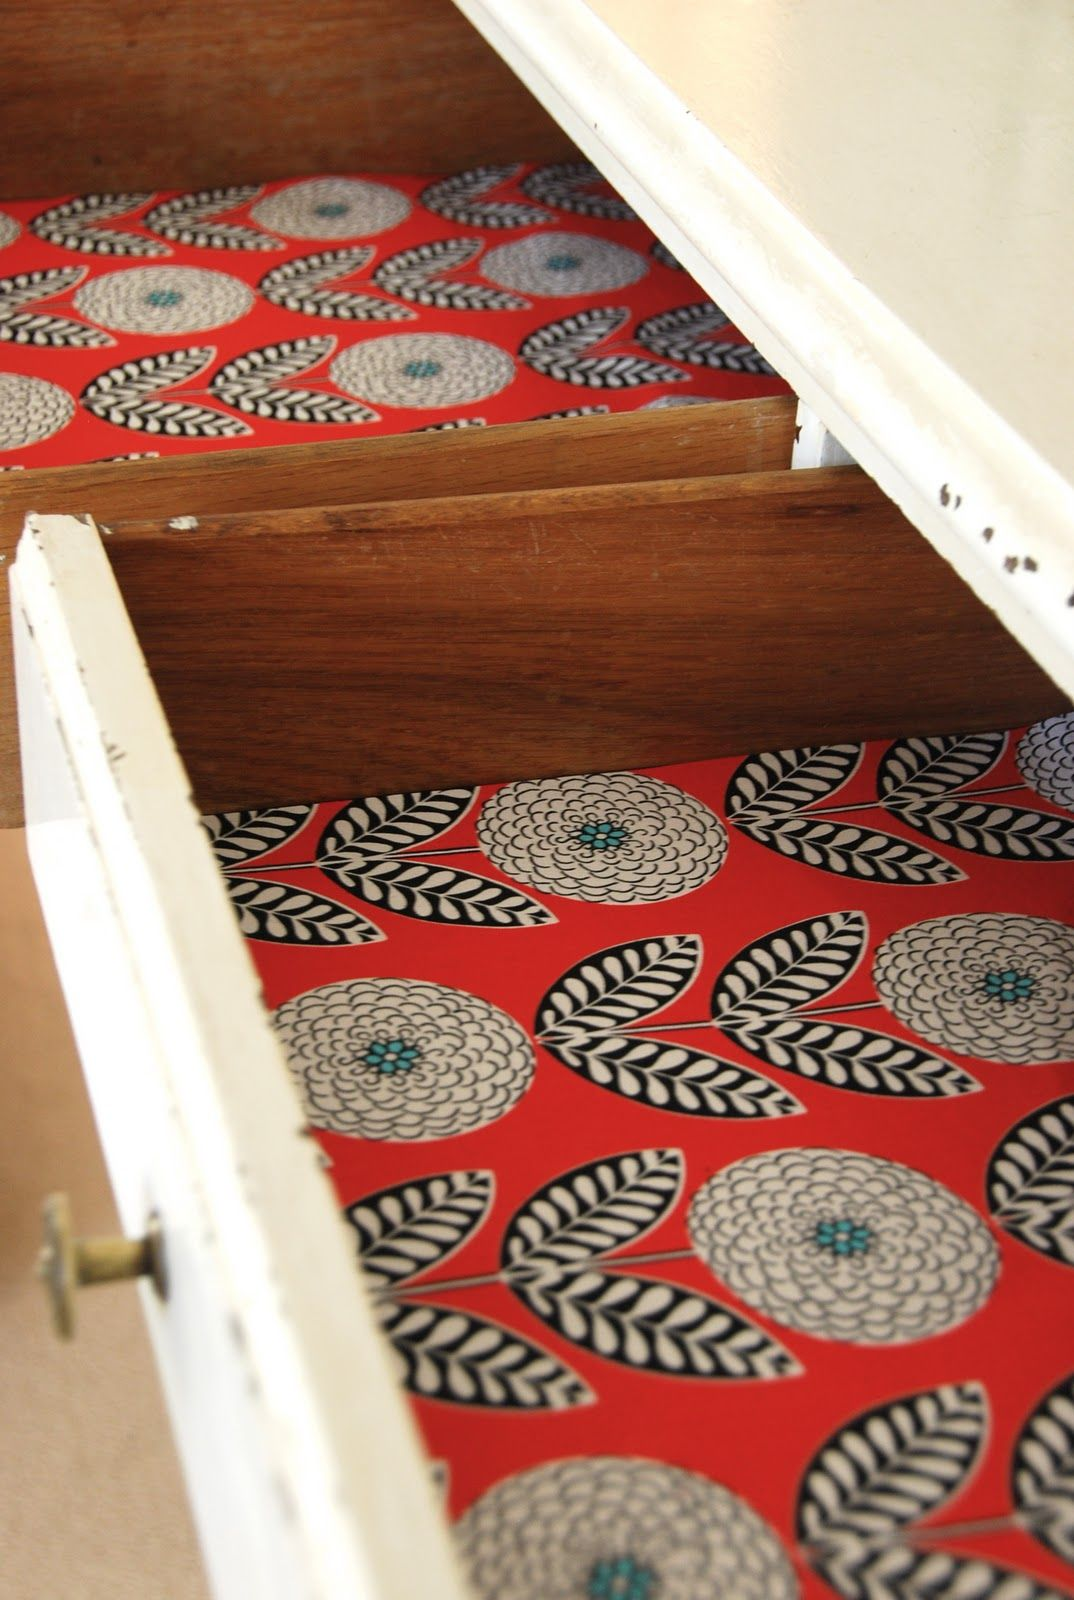 diy drawer liners i m going to use these for my dorm drawers this diy drawer liners i m going to use these for my dorm drawers this